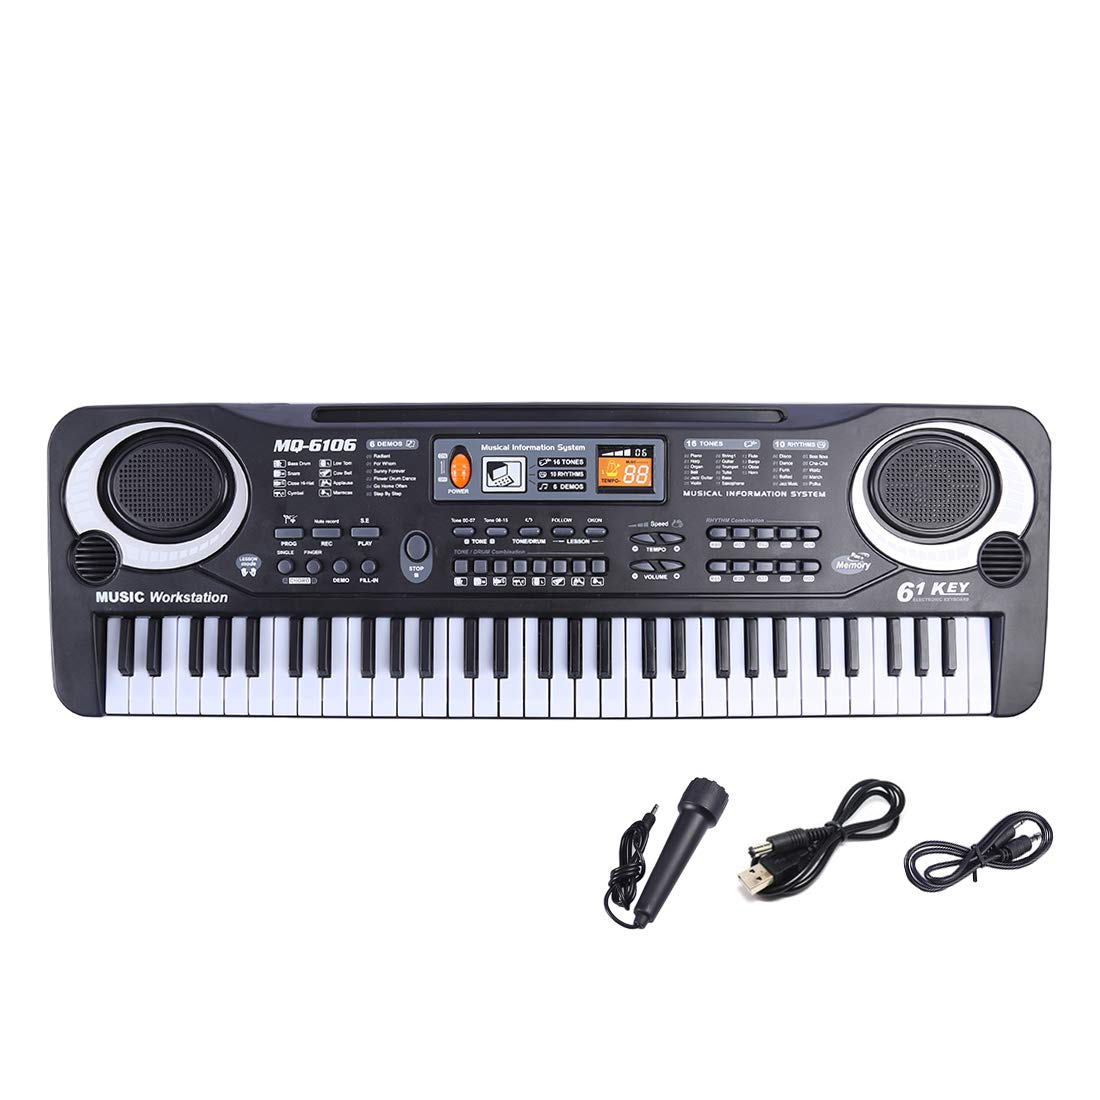 RuiyiF 61-Key Portable Keyboard Piano with Microphone for Kids, Electronic Piano Keyboards Toys for Toddlers Boys Girls Age 3-9